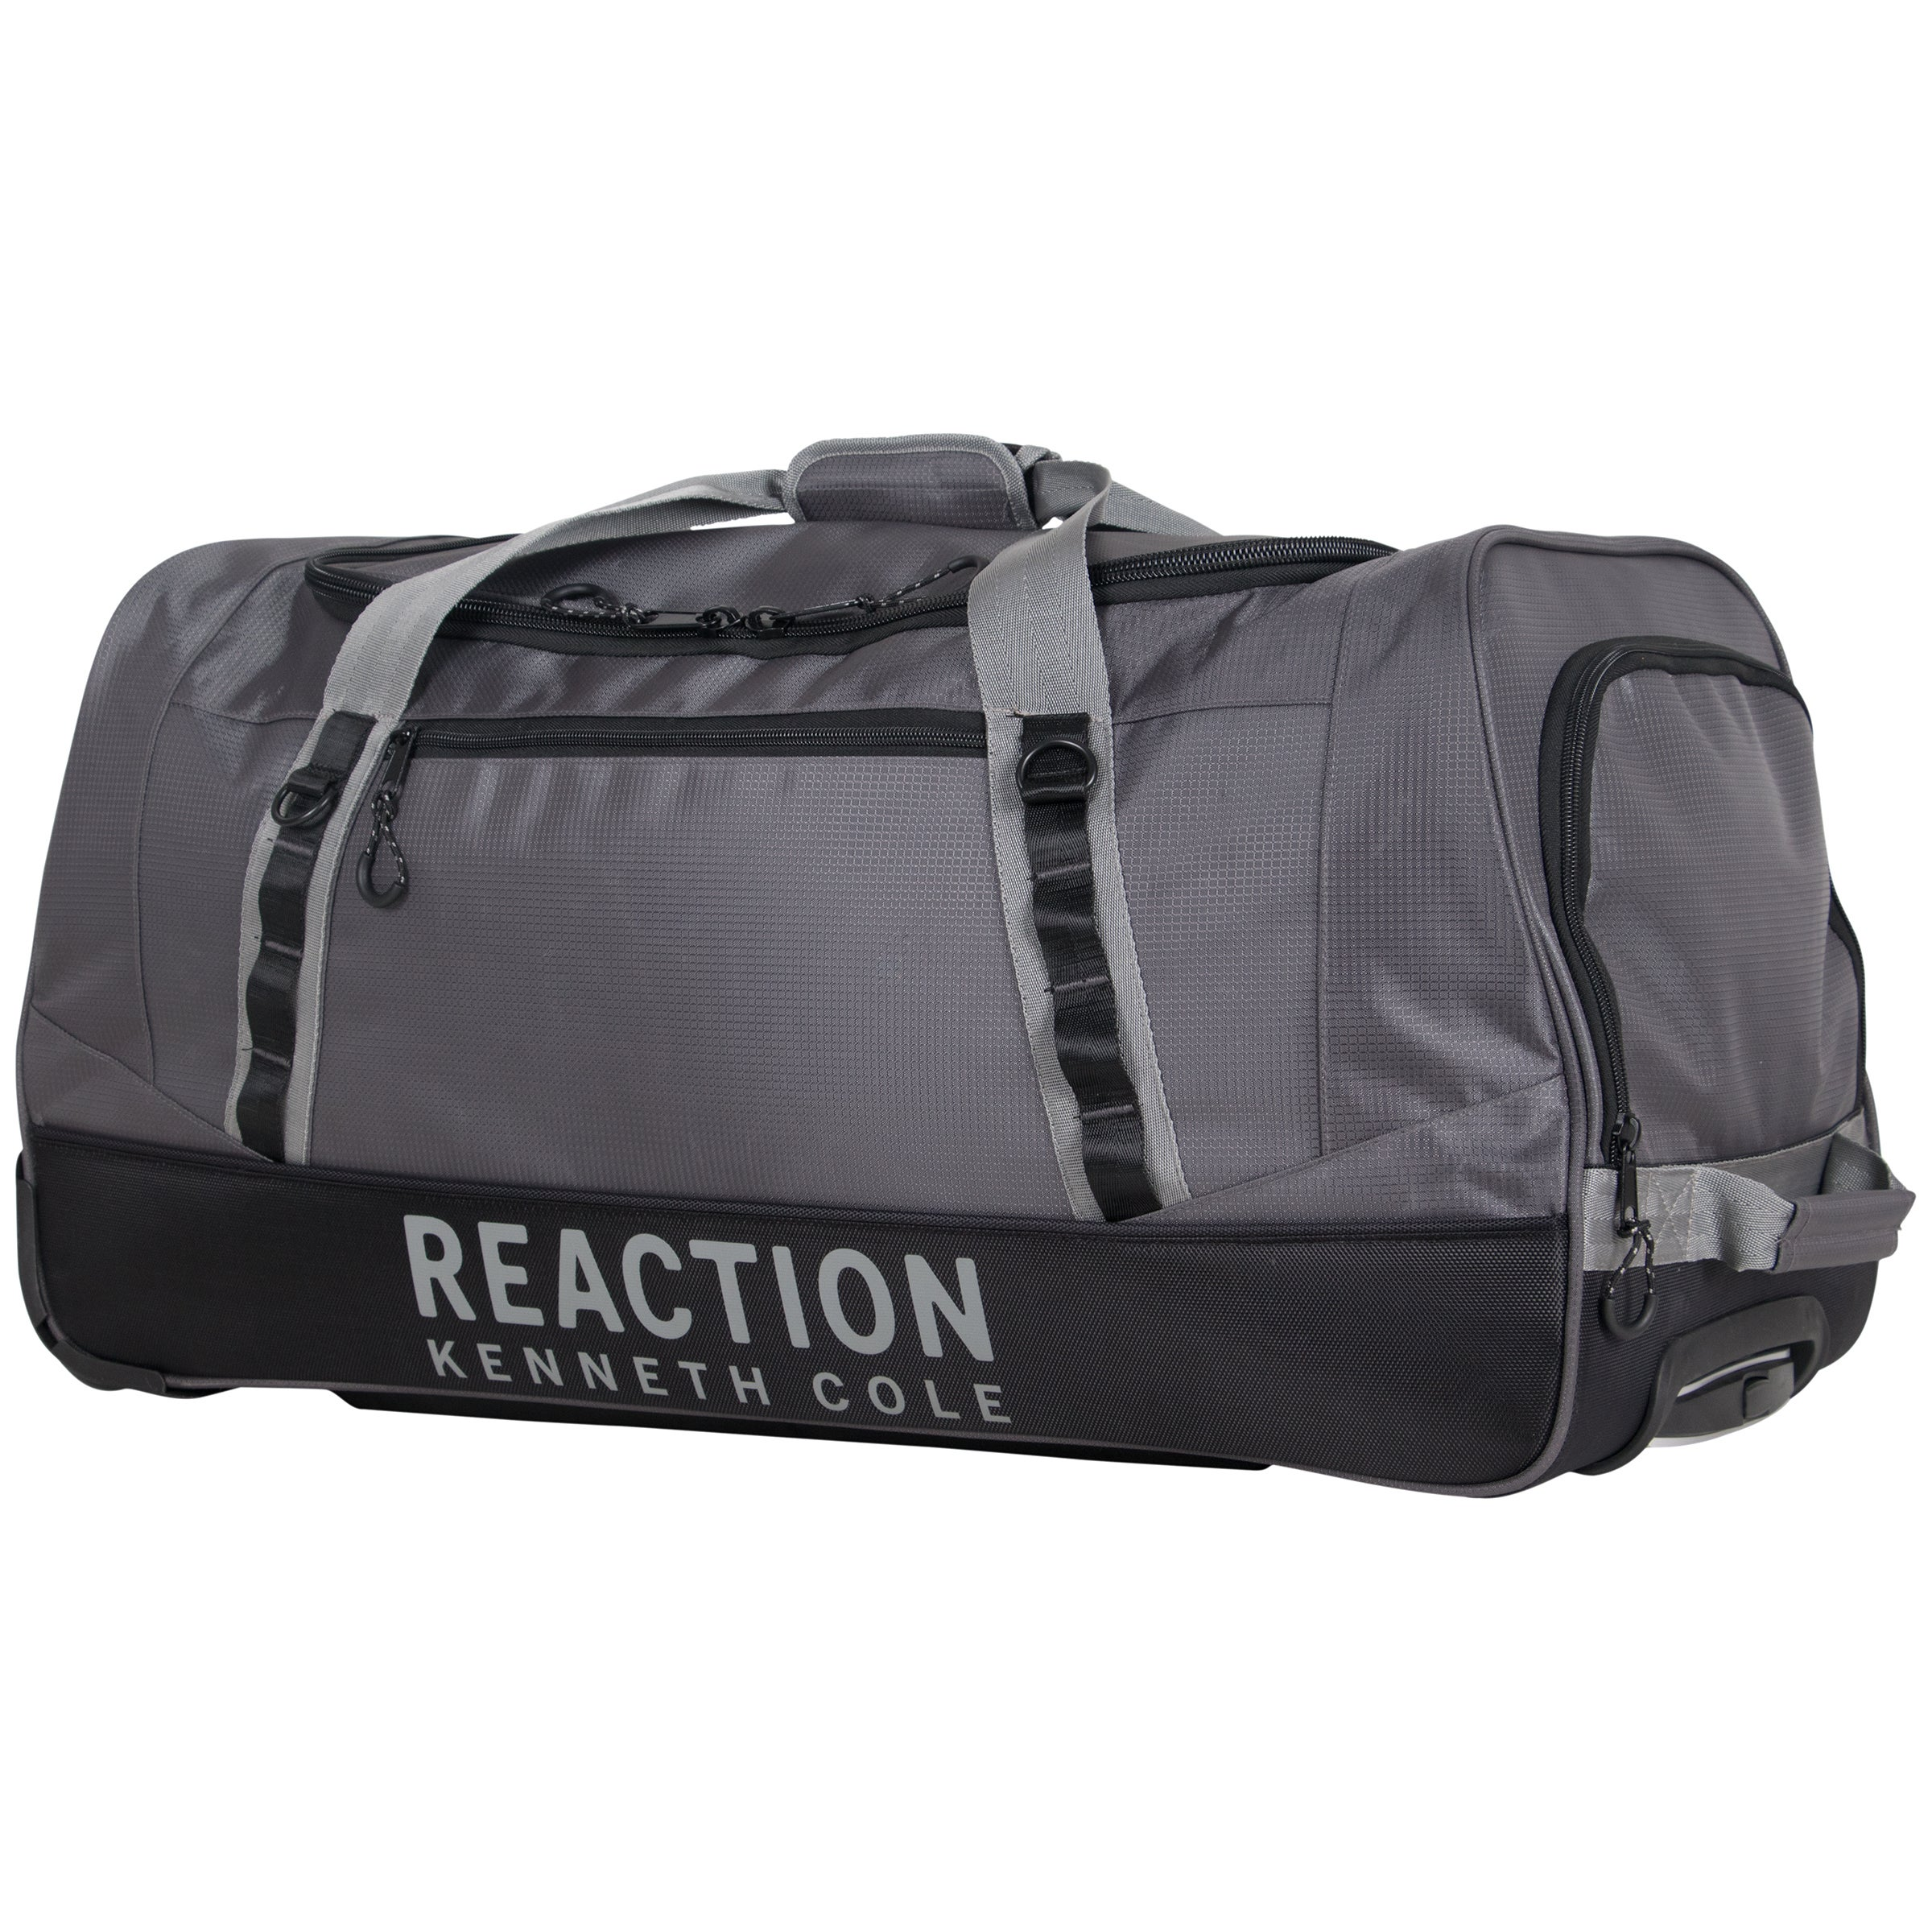 Kenneth Cole Reaction 30 Inch Lightweight Large Capacity 2 Wheel Rolling Duffel Bag Free Shipping Today 20374970